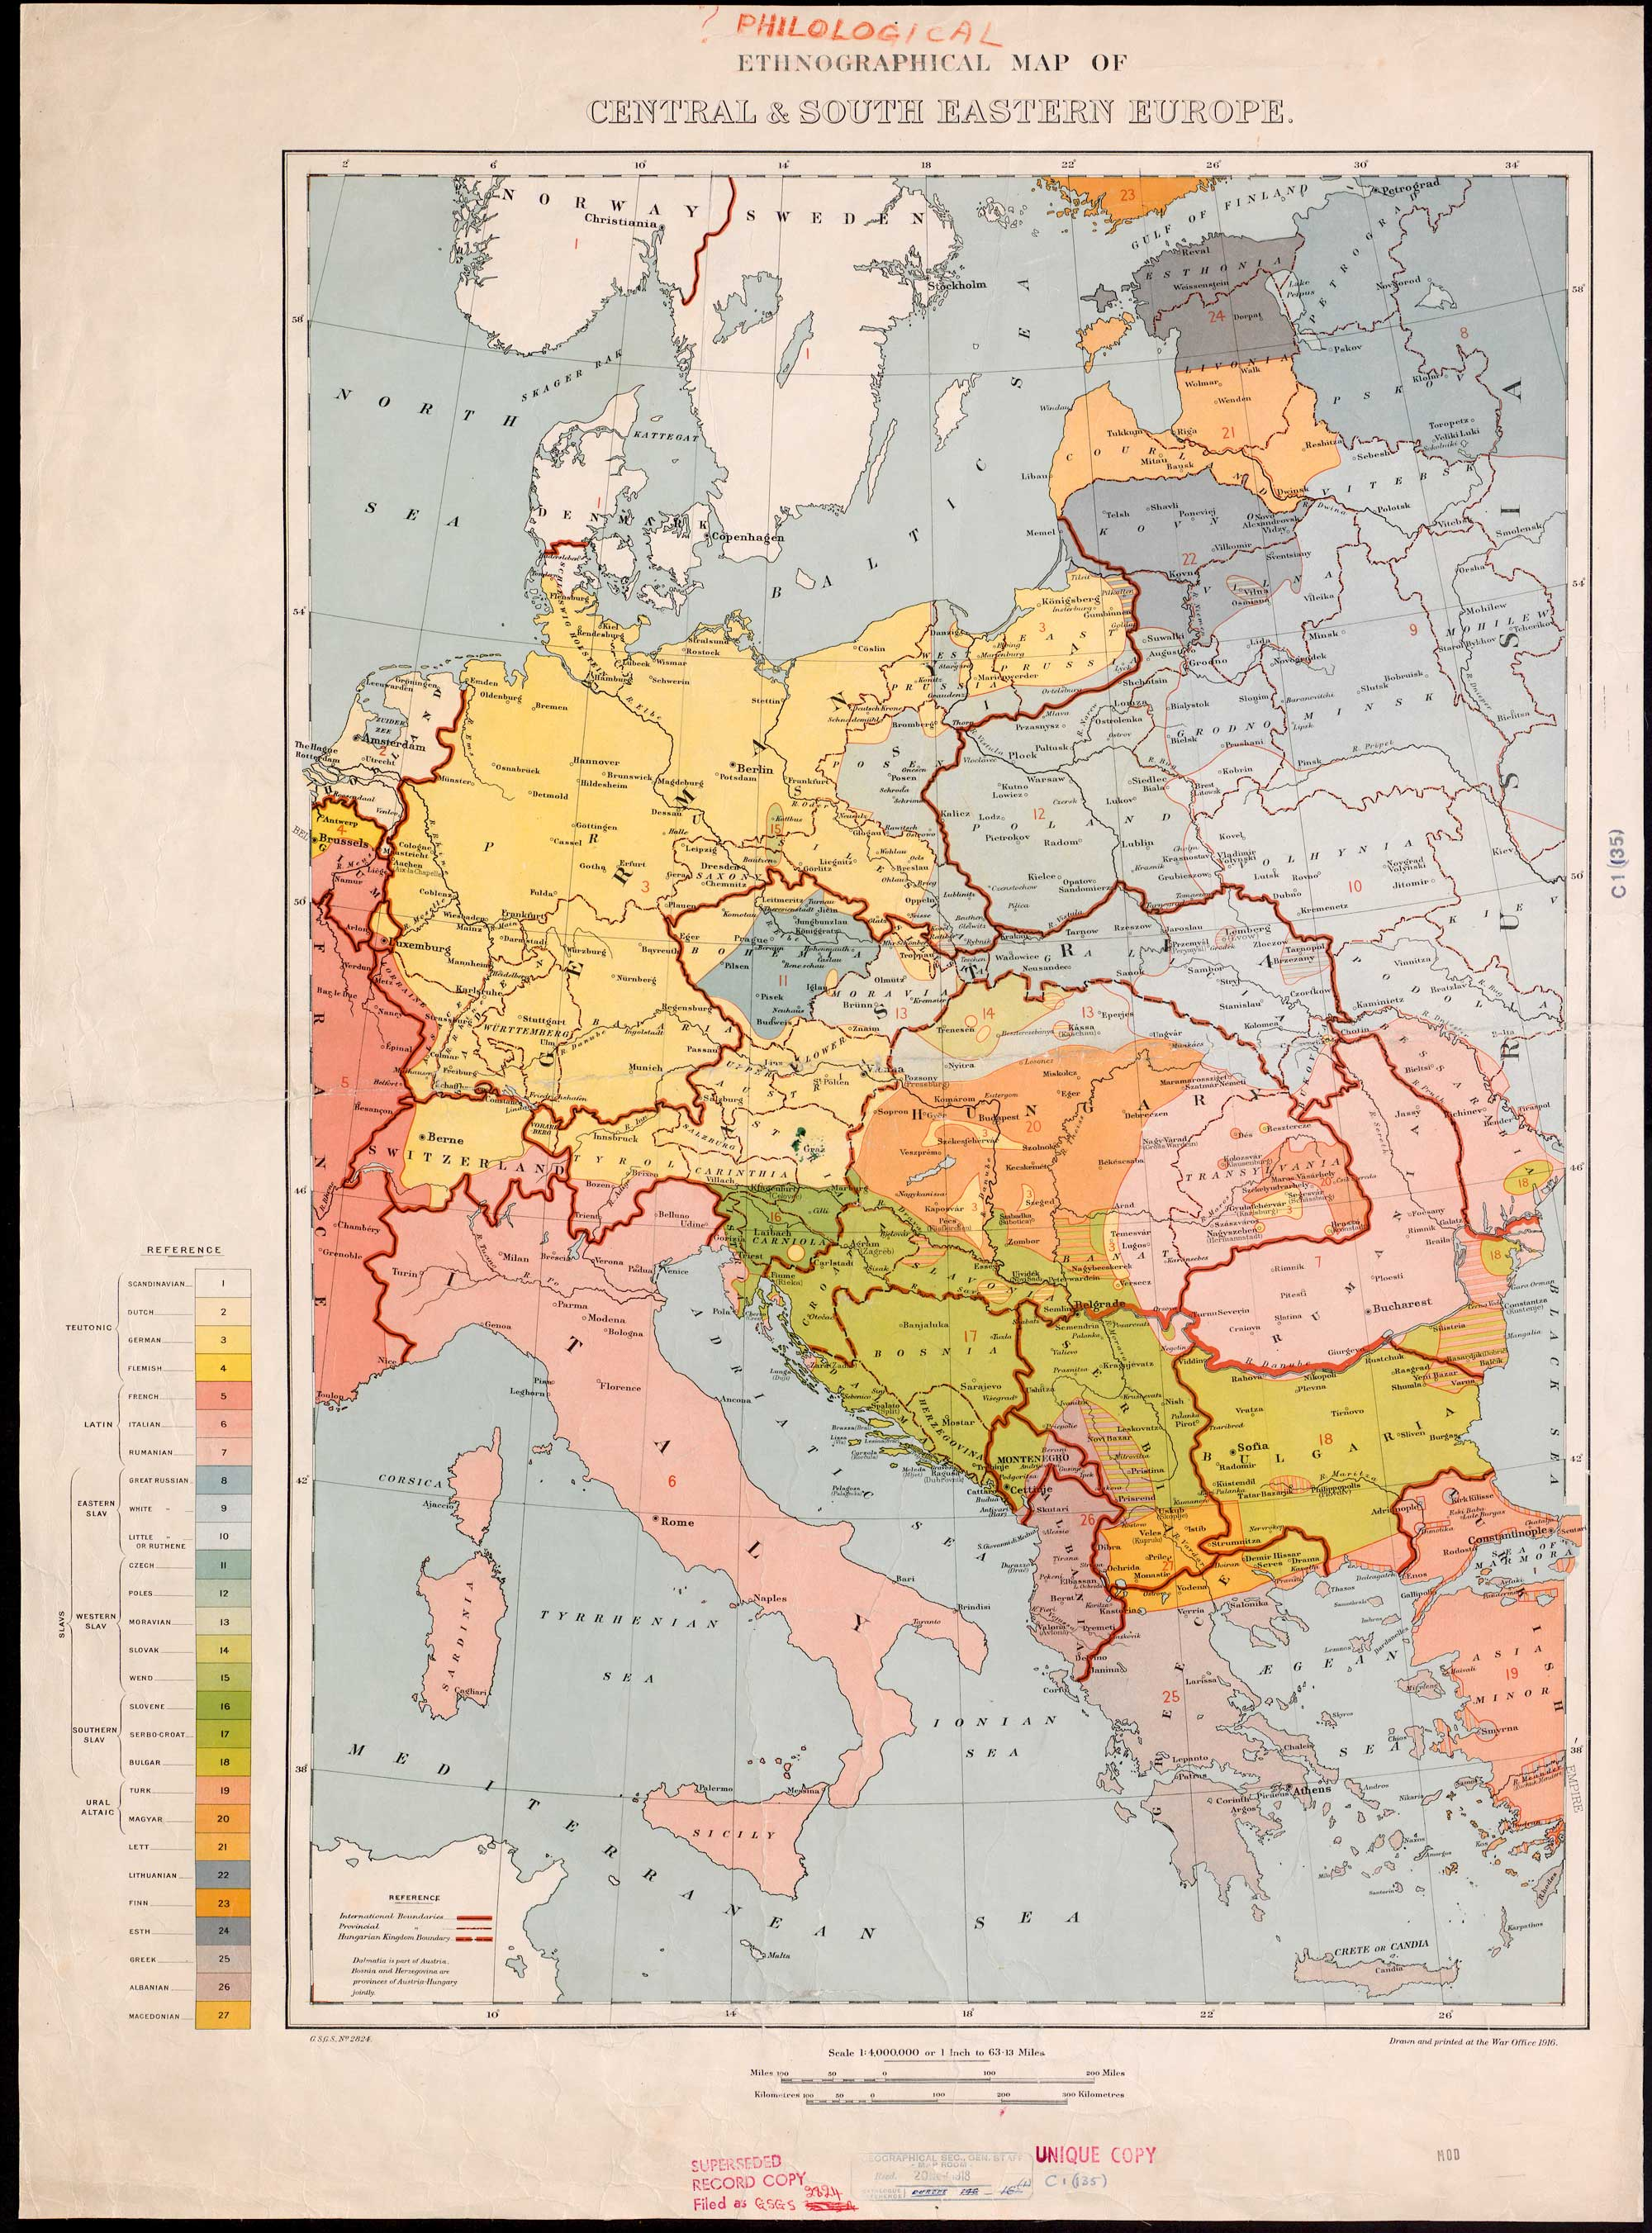 Ethnographical map from 1916 showing spoken native languages in central and south eastern Europe.